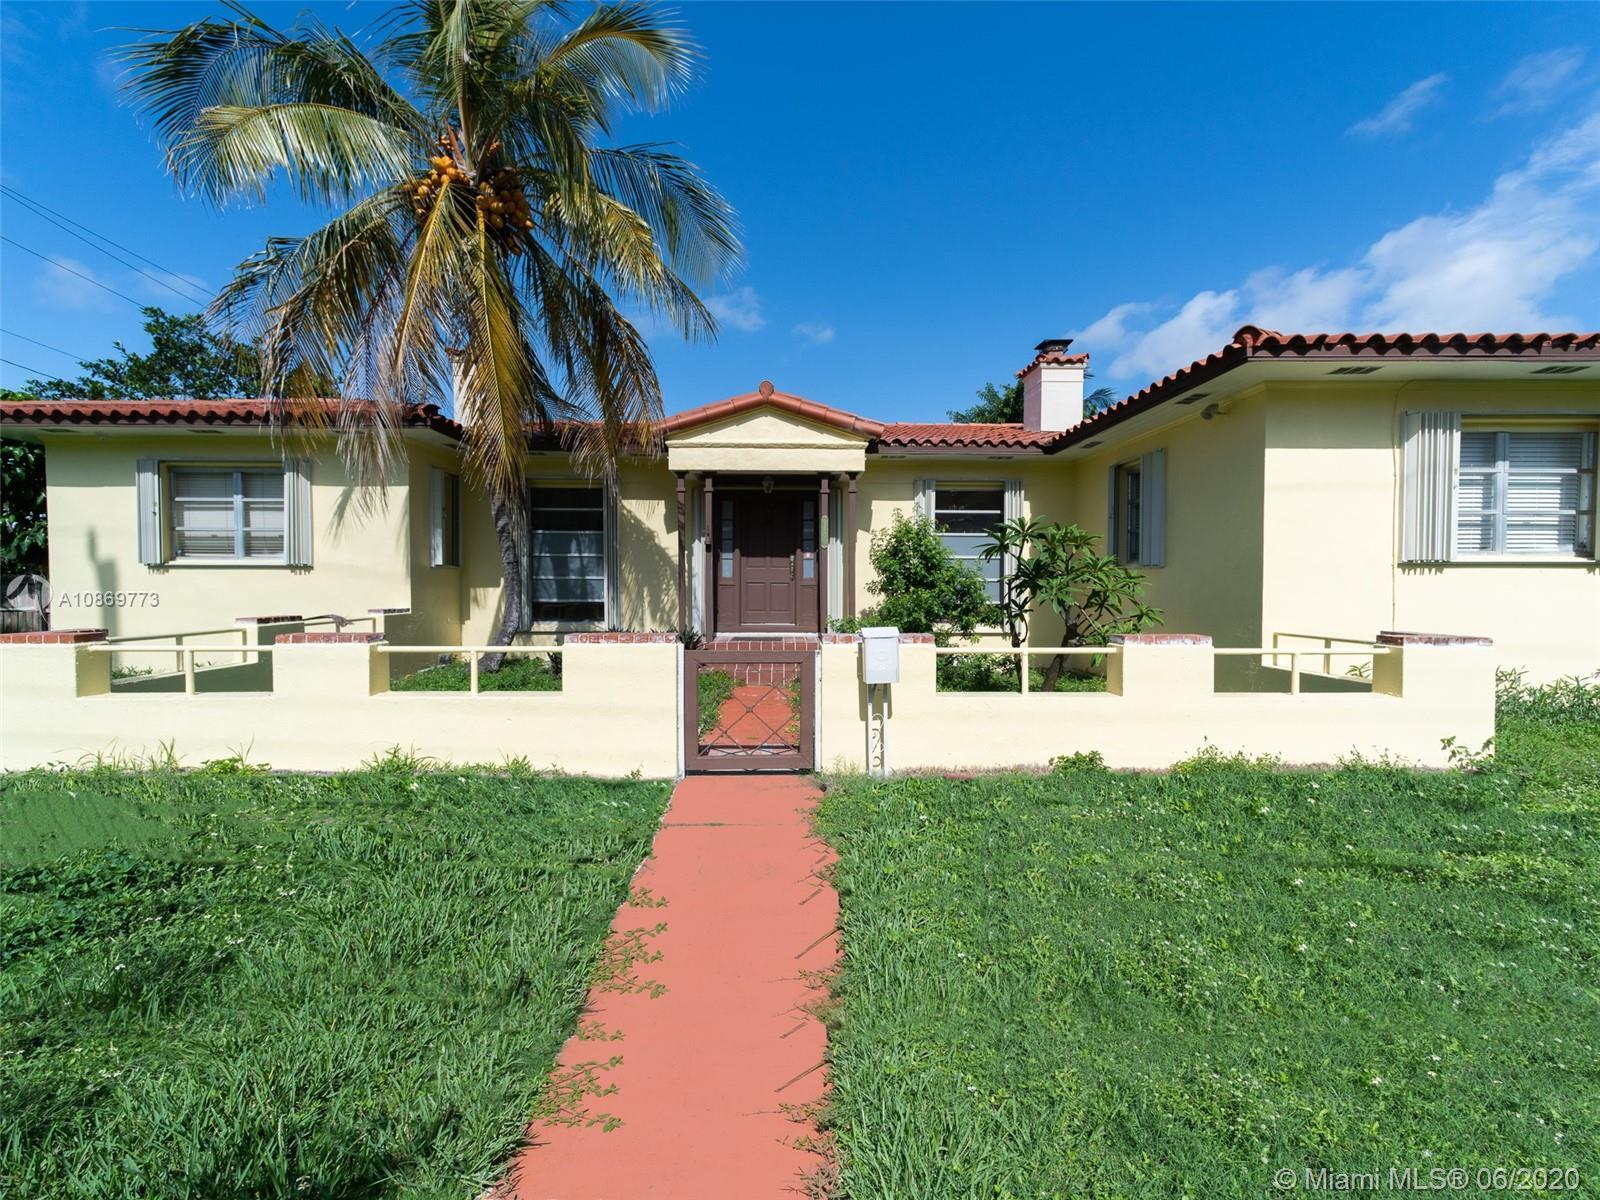 Lovely 3 bed 2 bath home in the quiet, family friendly Surfside neighborhood. Spacious, open and bri